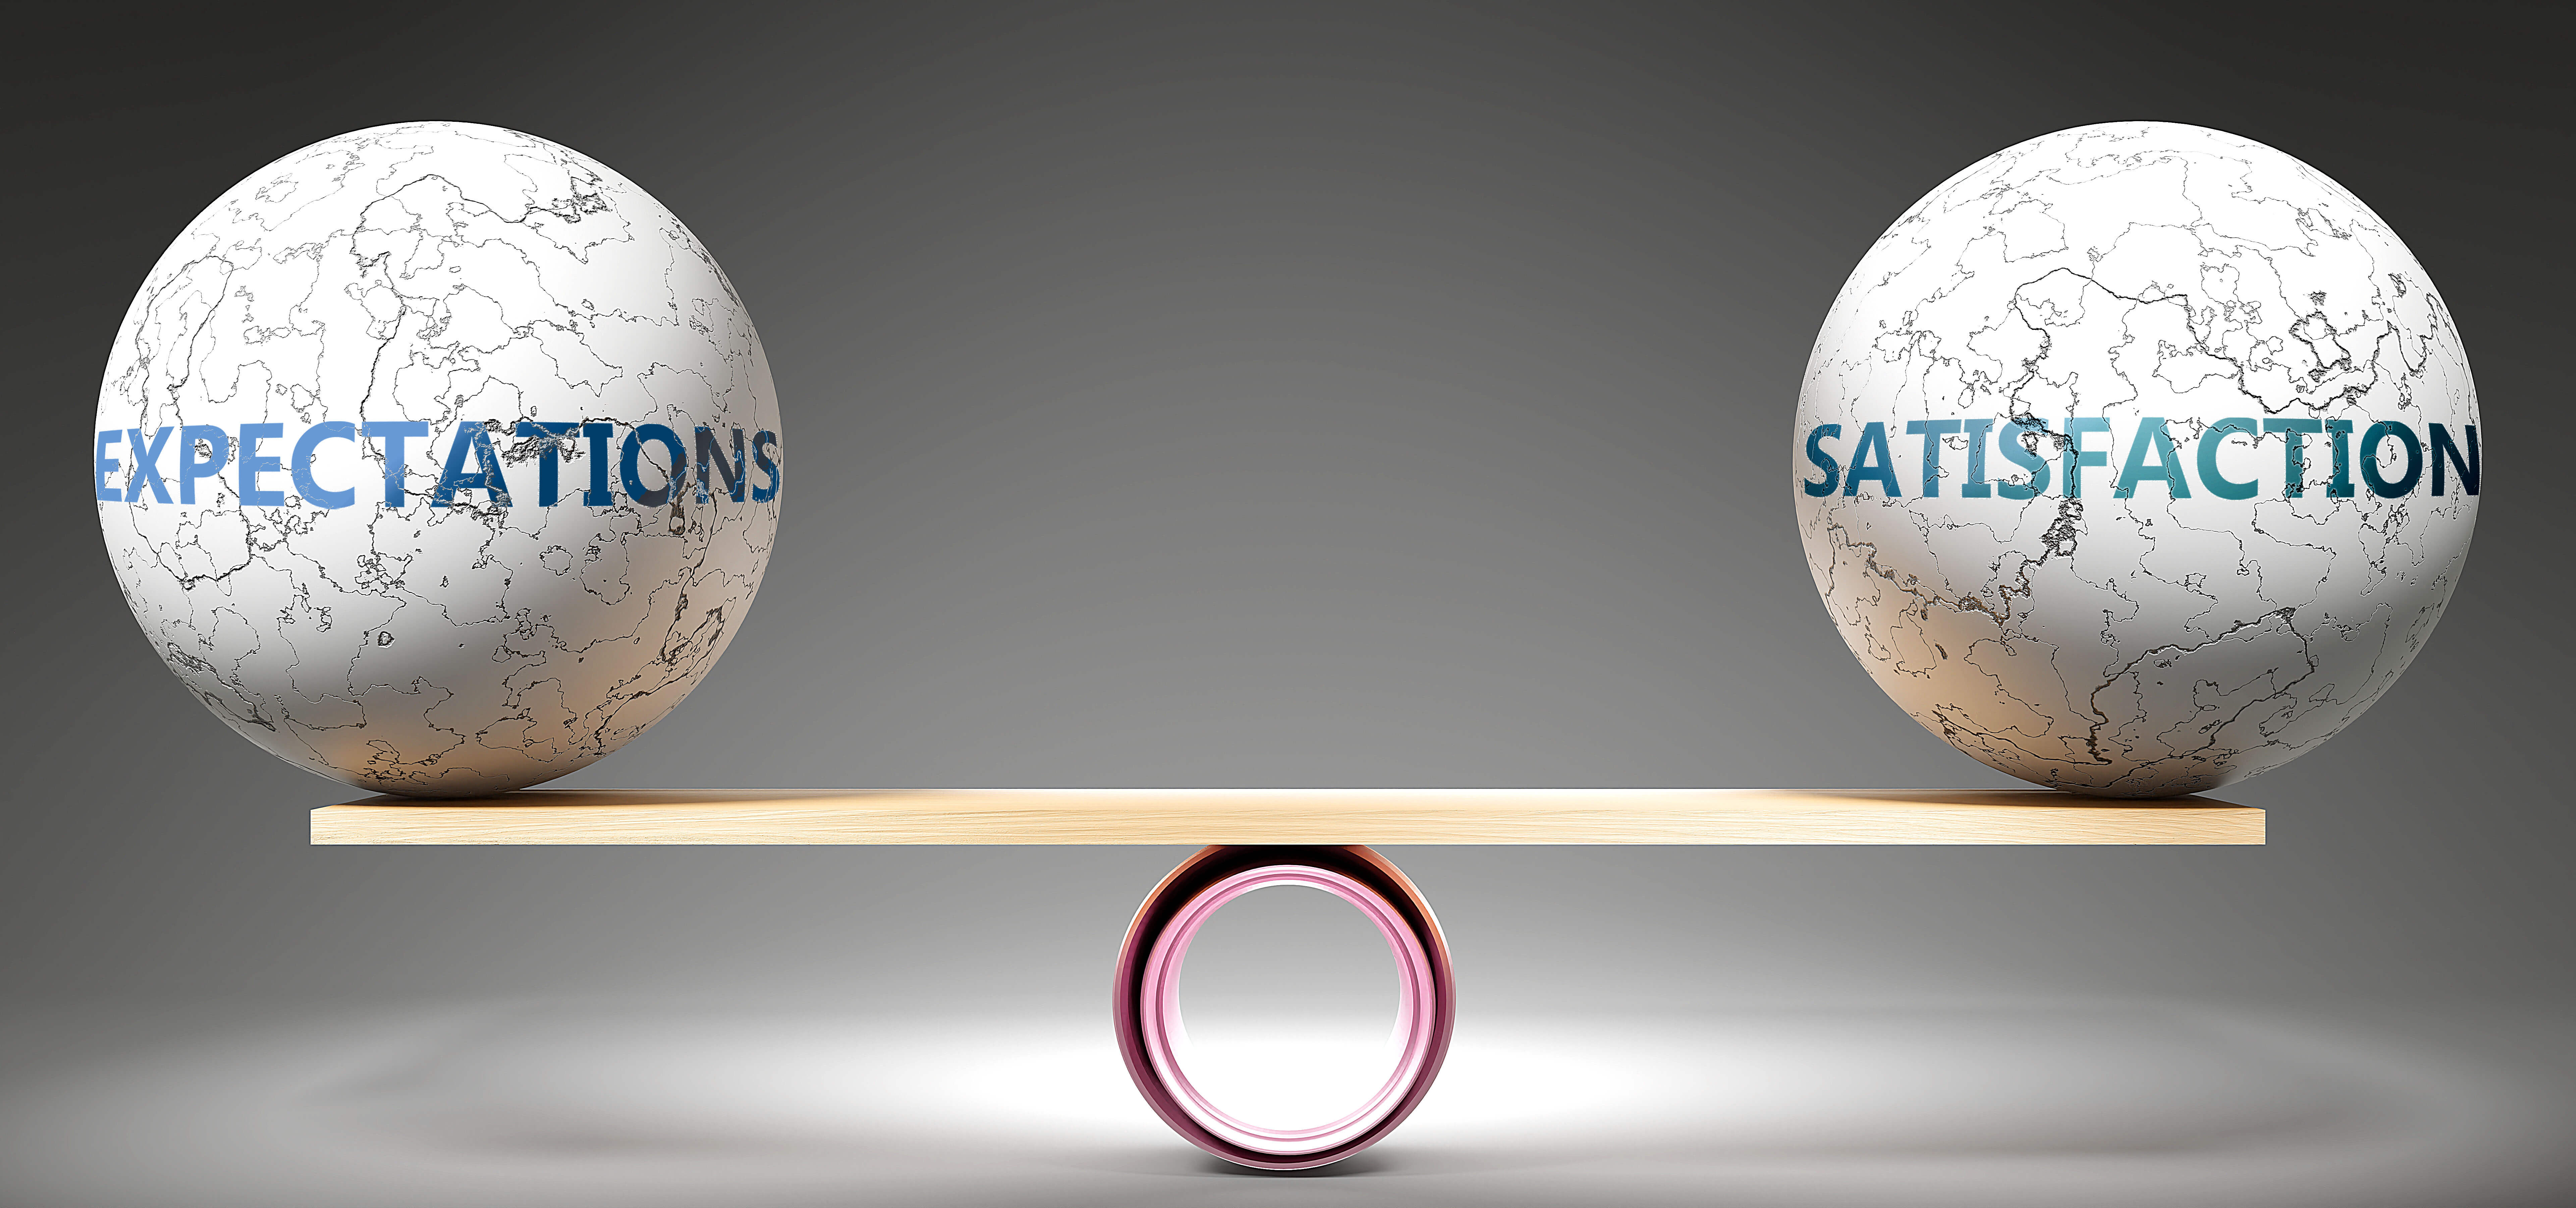 Expectations and satisfaction in balance - pictured as balanced balls on scale that symbolize harmony and equity between Expectations and satisfaction that is good and beneficial., 3d illustration